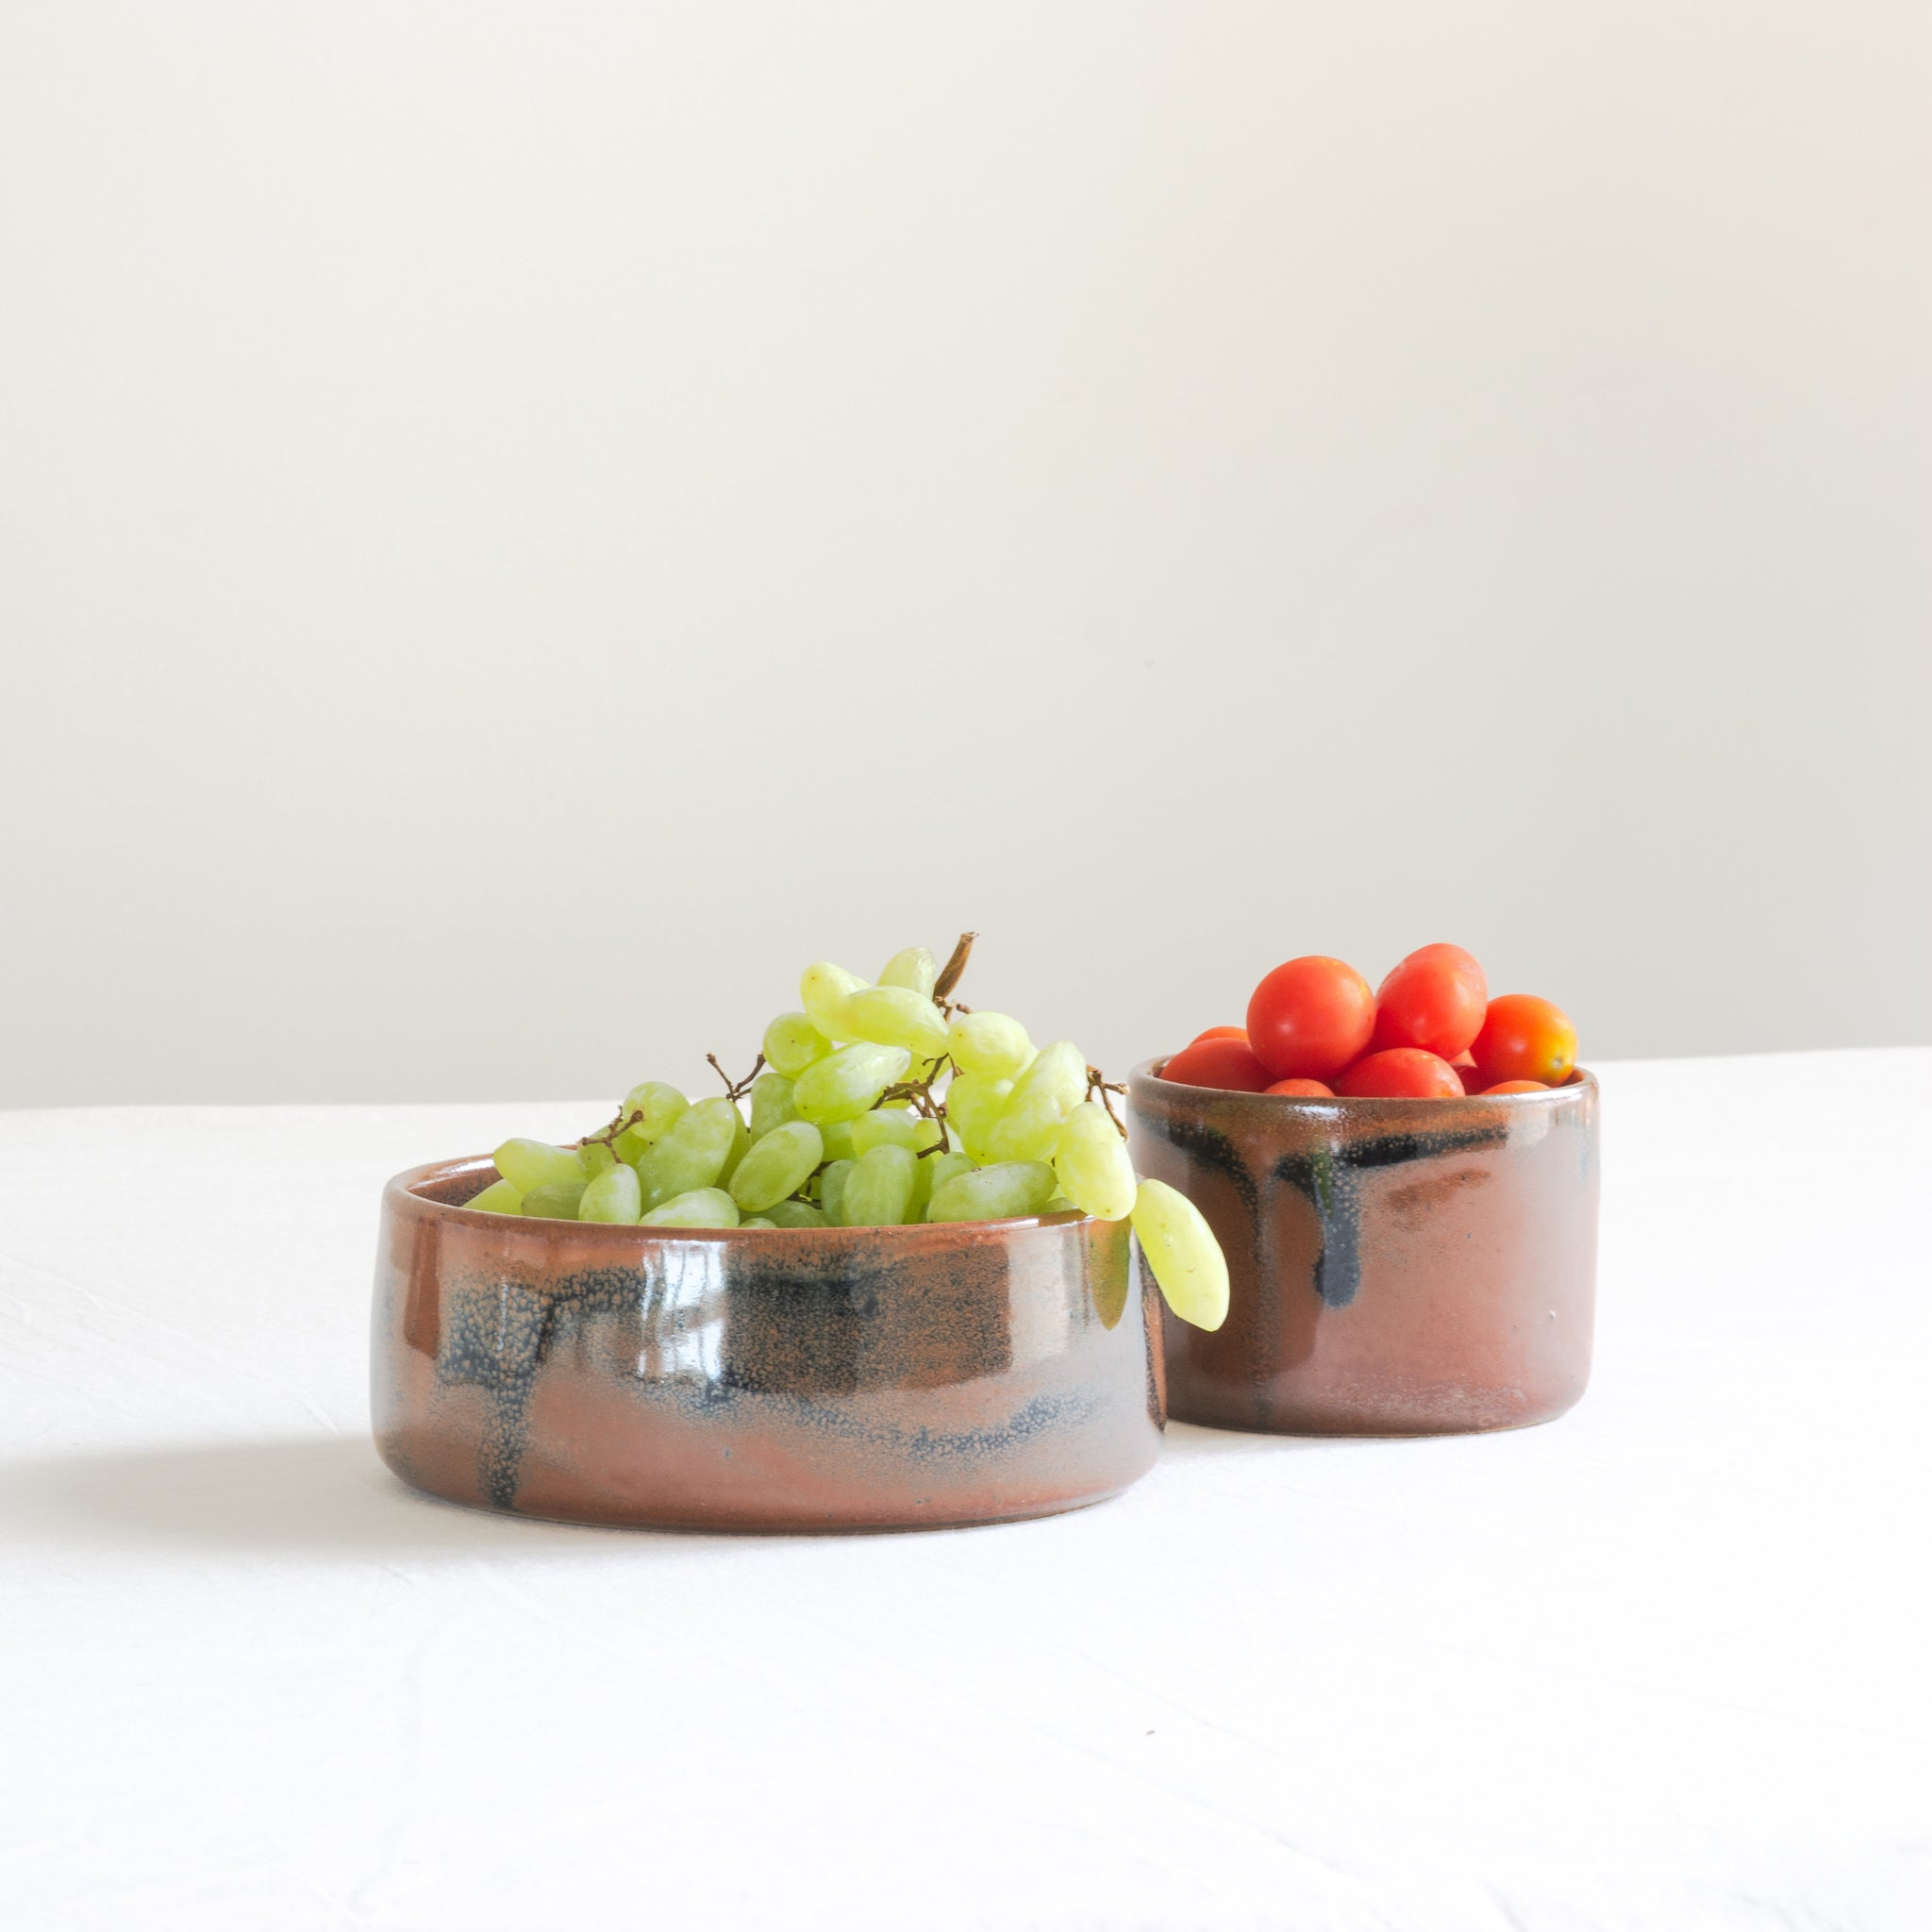 Handmade studio pottery cognac ceramic bowls with fruits in it